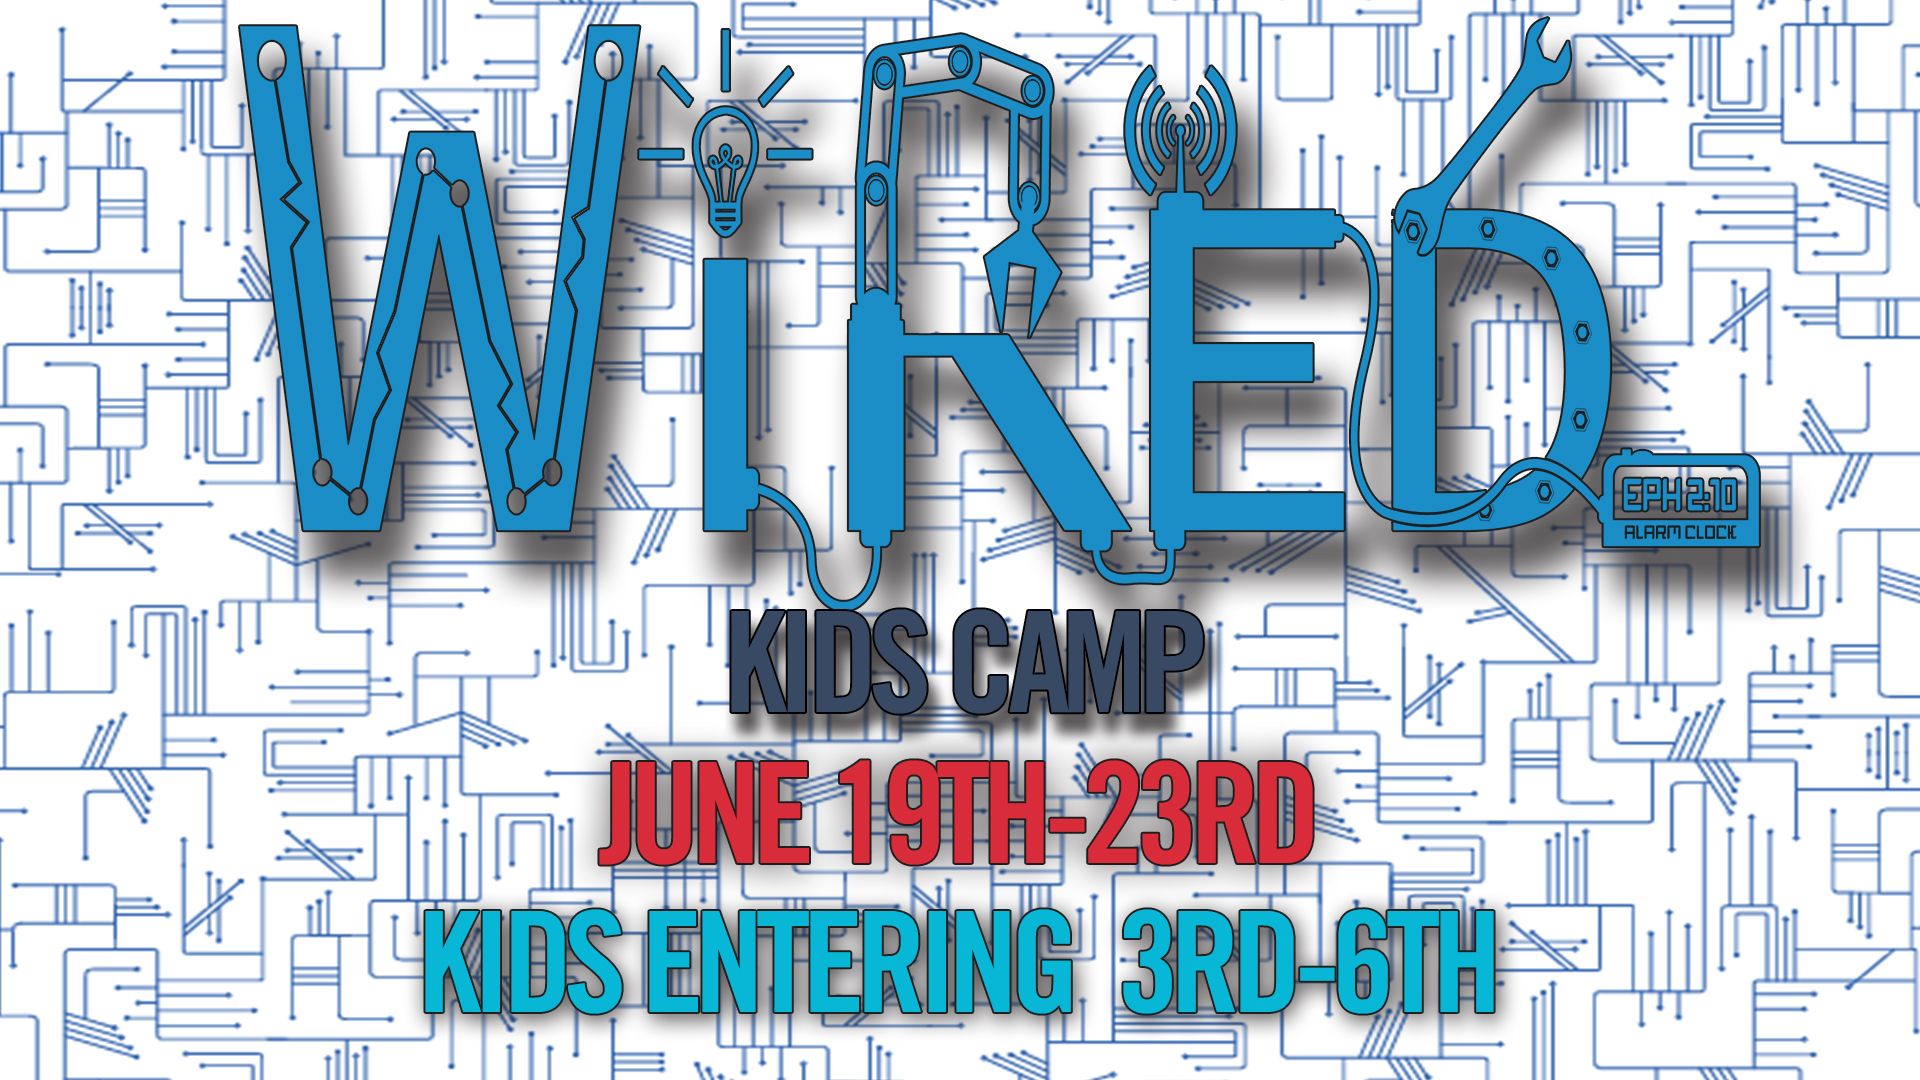 Wired webgraphic